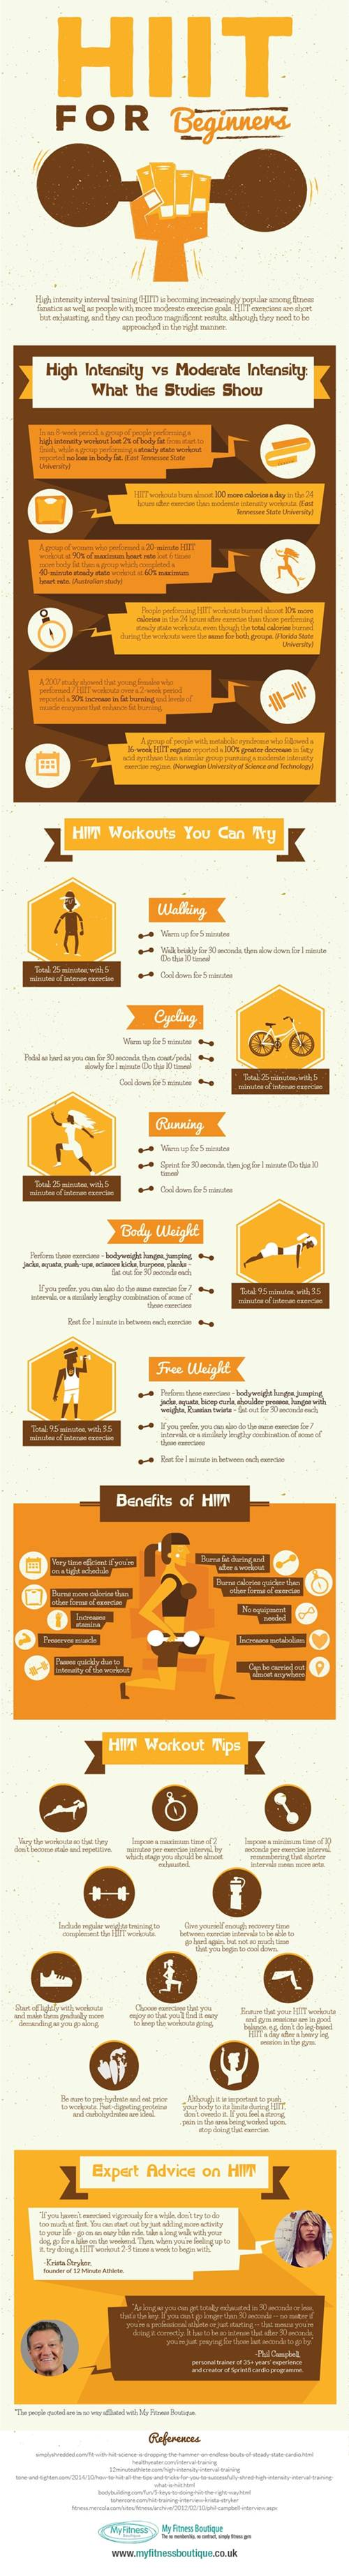 HIIT for Beginners - Infographic